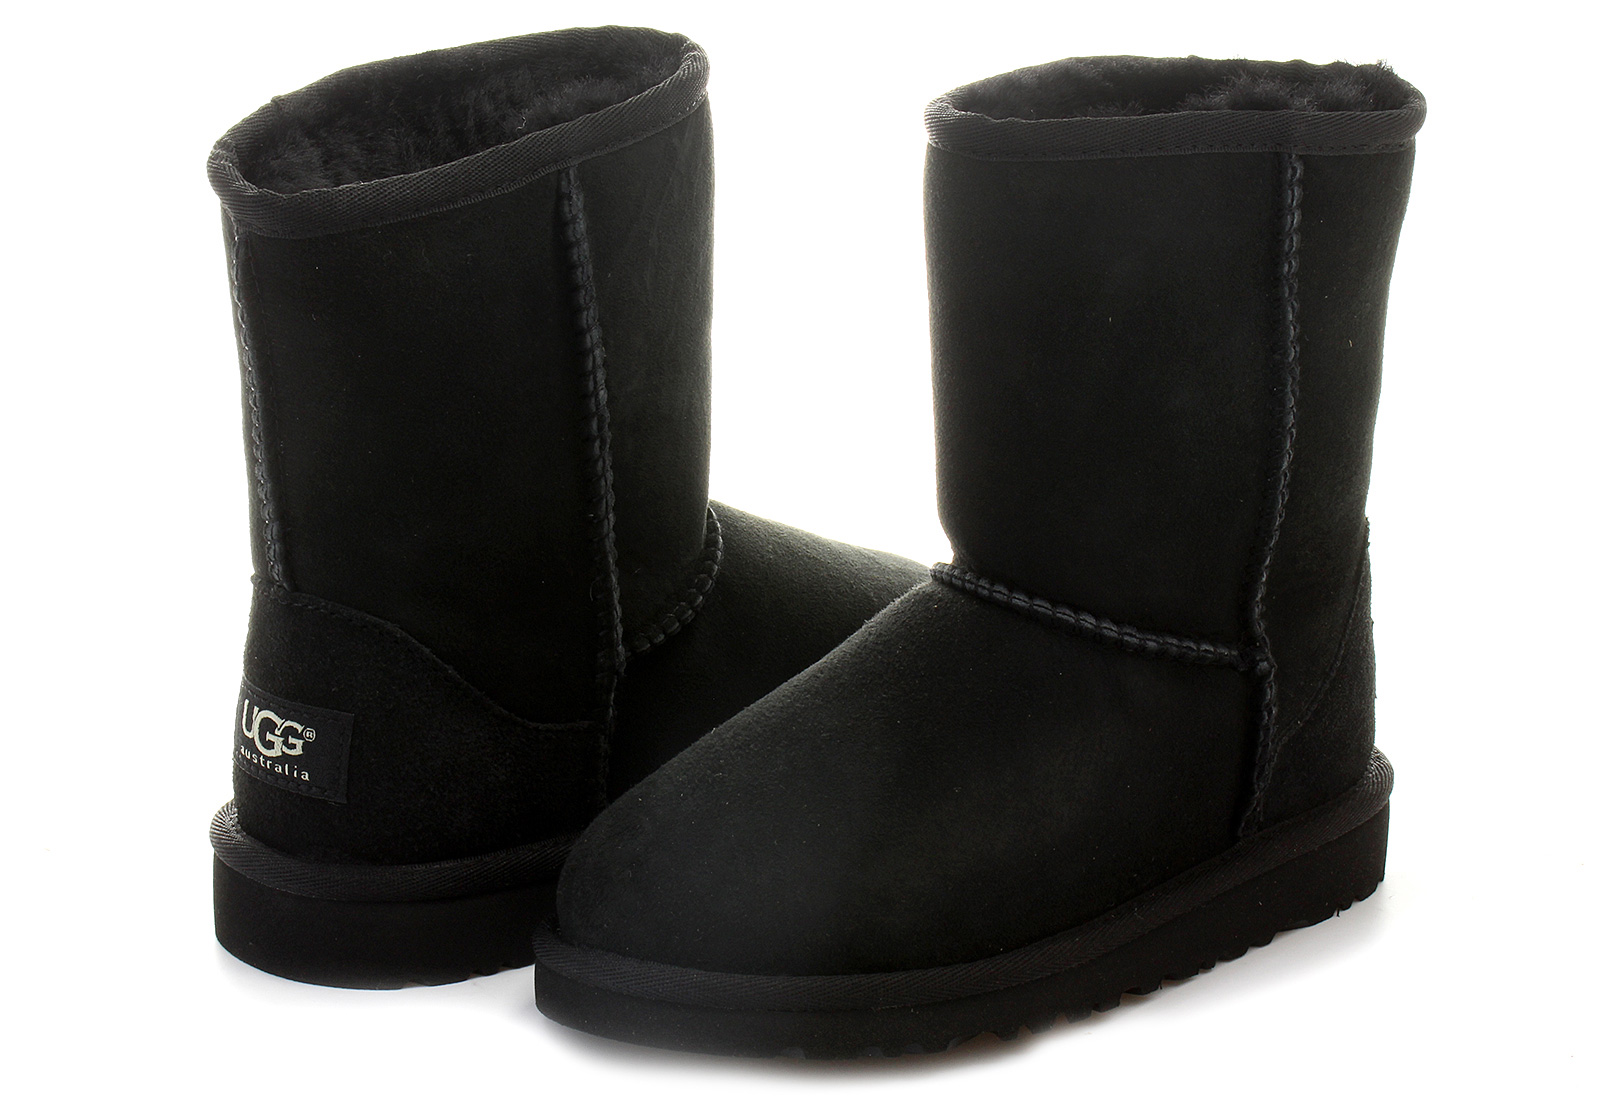 8c823a250 Ugg Boots - K Classic Short - 5251Y-BLK - Online shop for sneakers ...